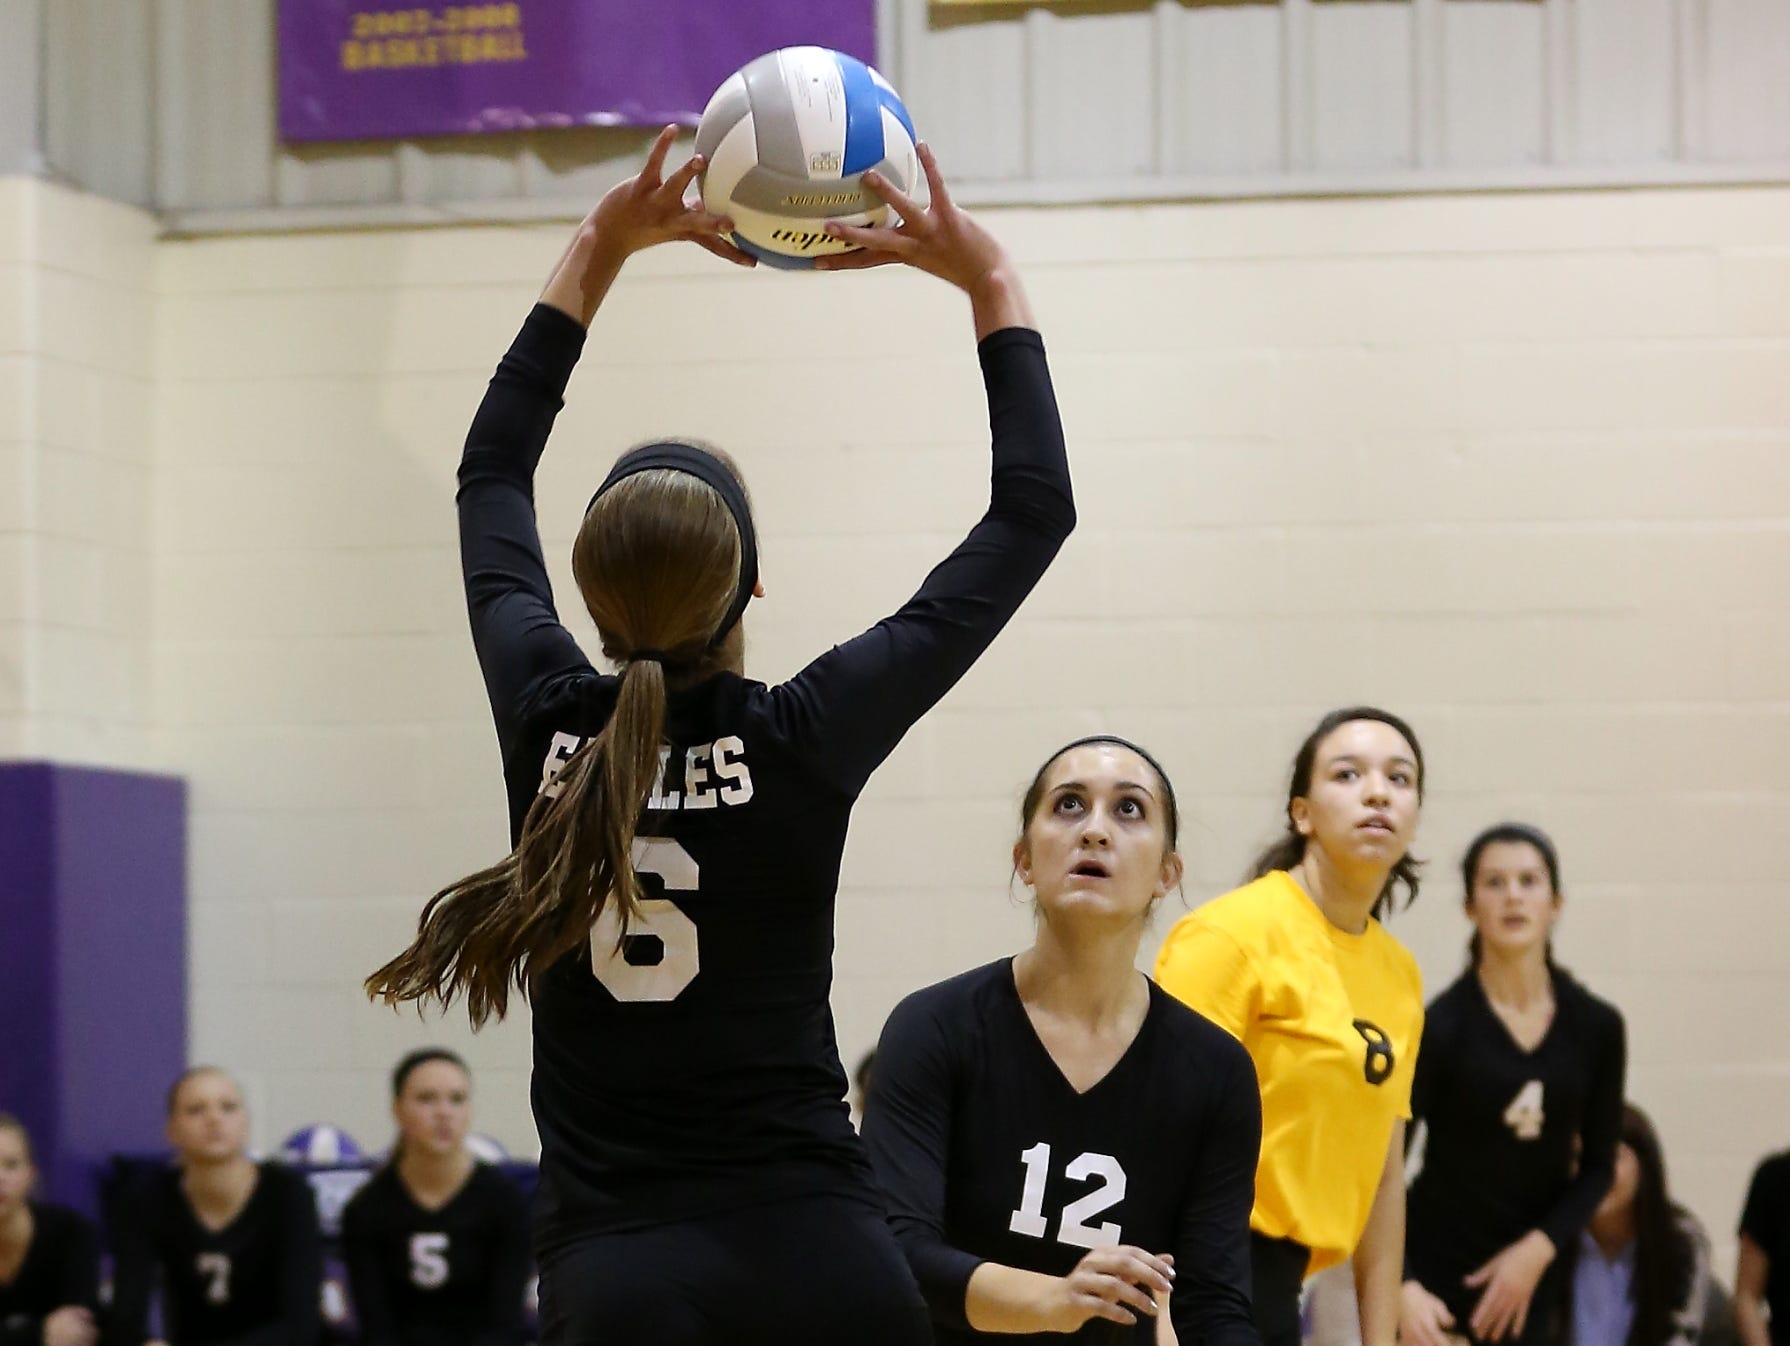 PCA's Jessica Paulson (No. 6) passes the ball to Abby Wyman (No. 12) during Thursday's Class D district final.